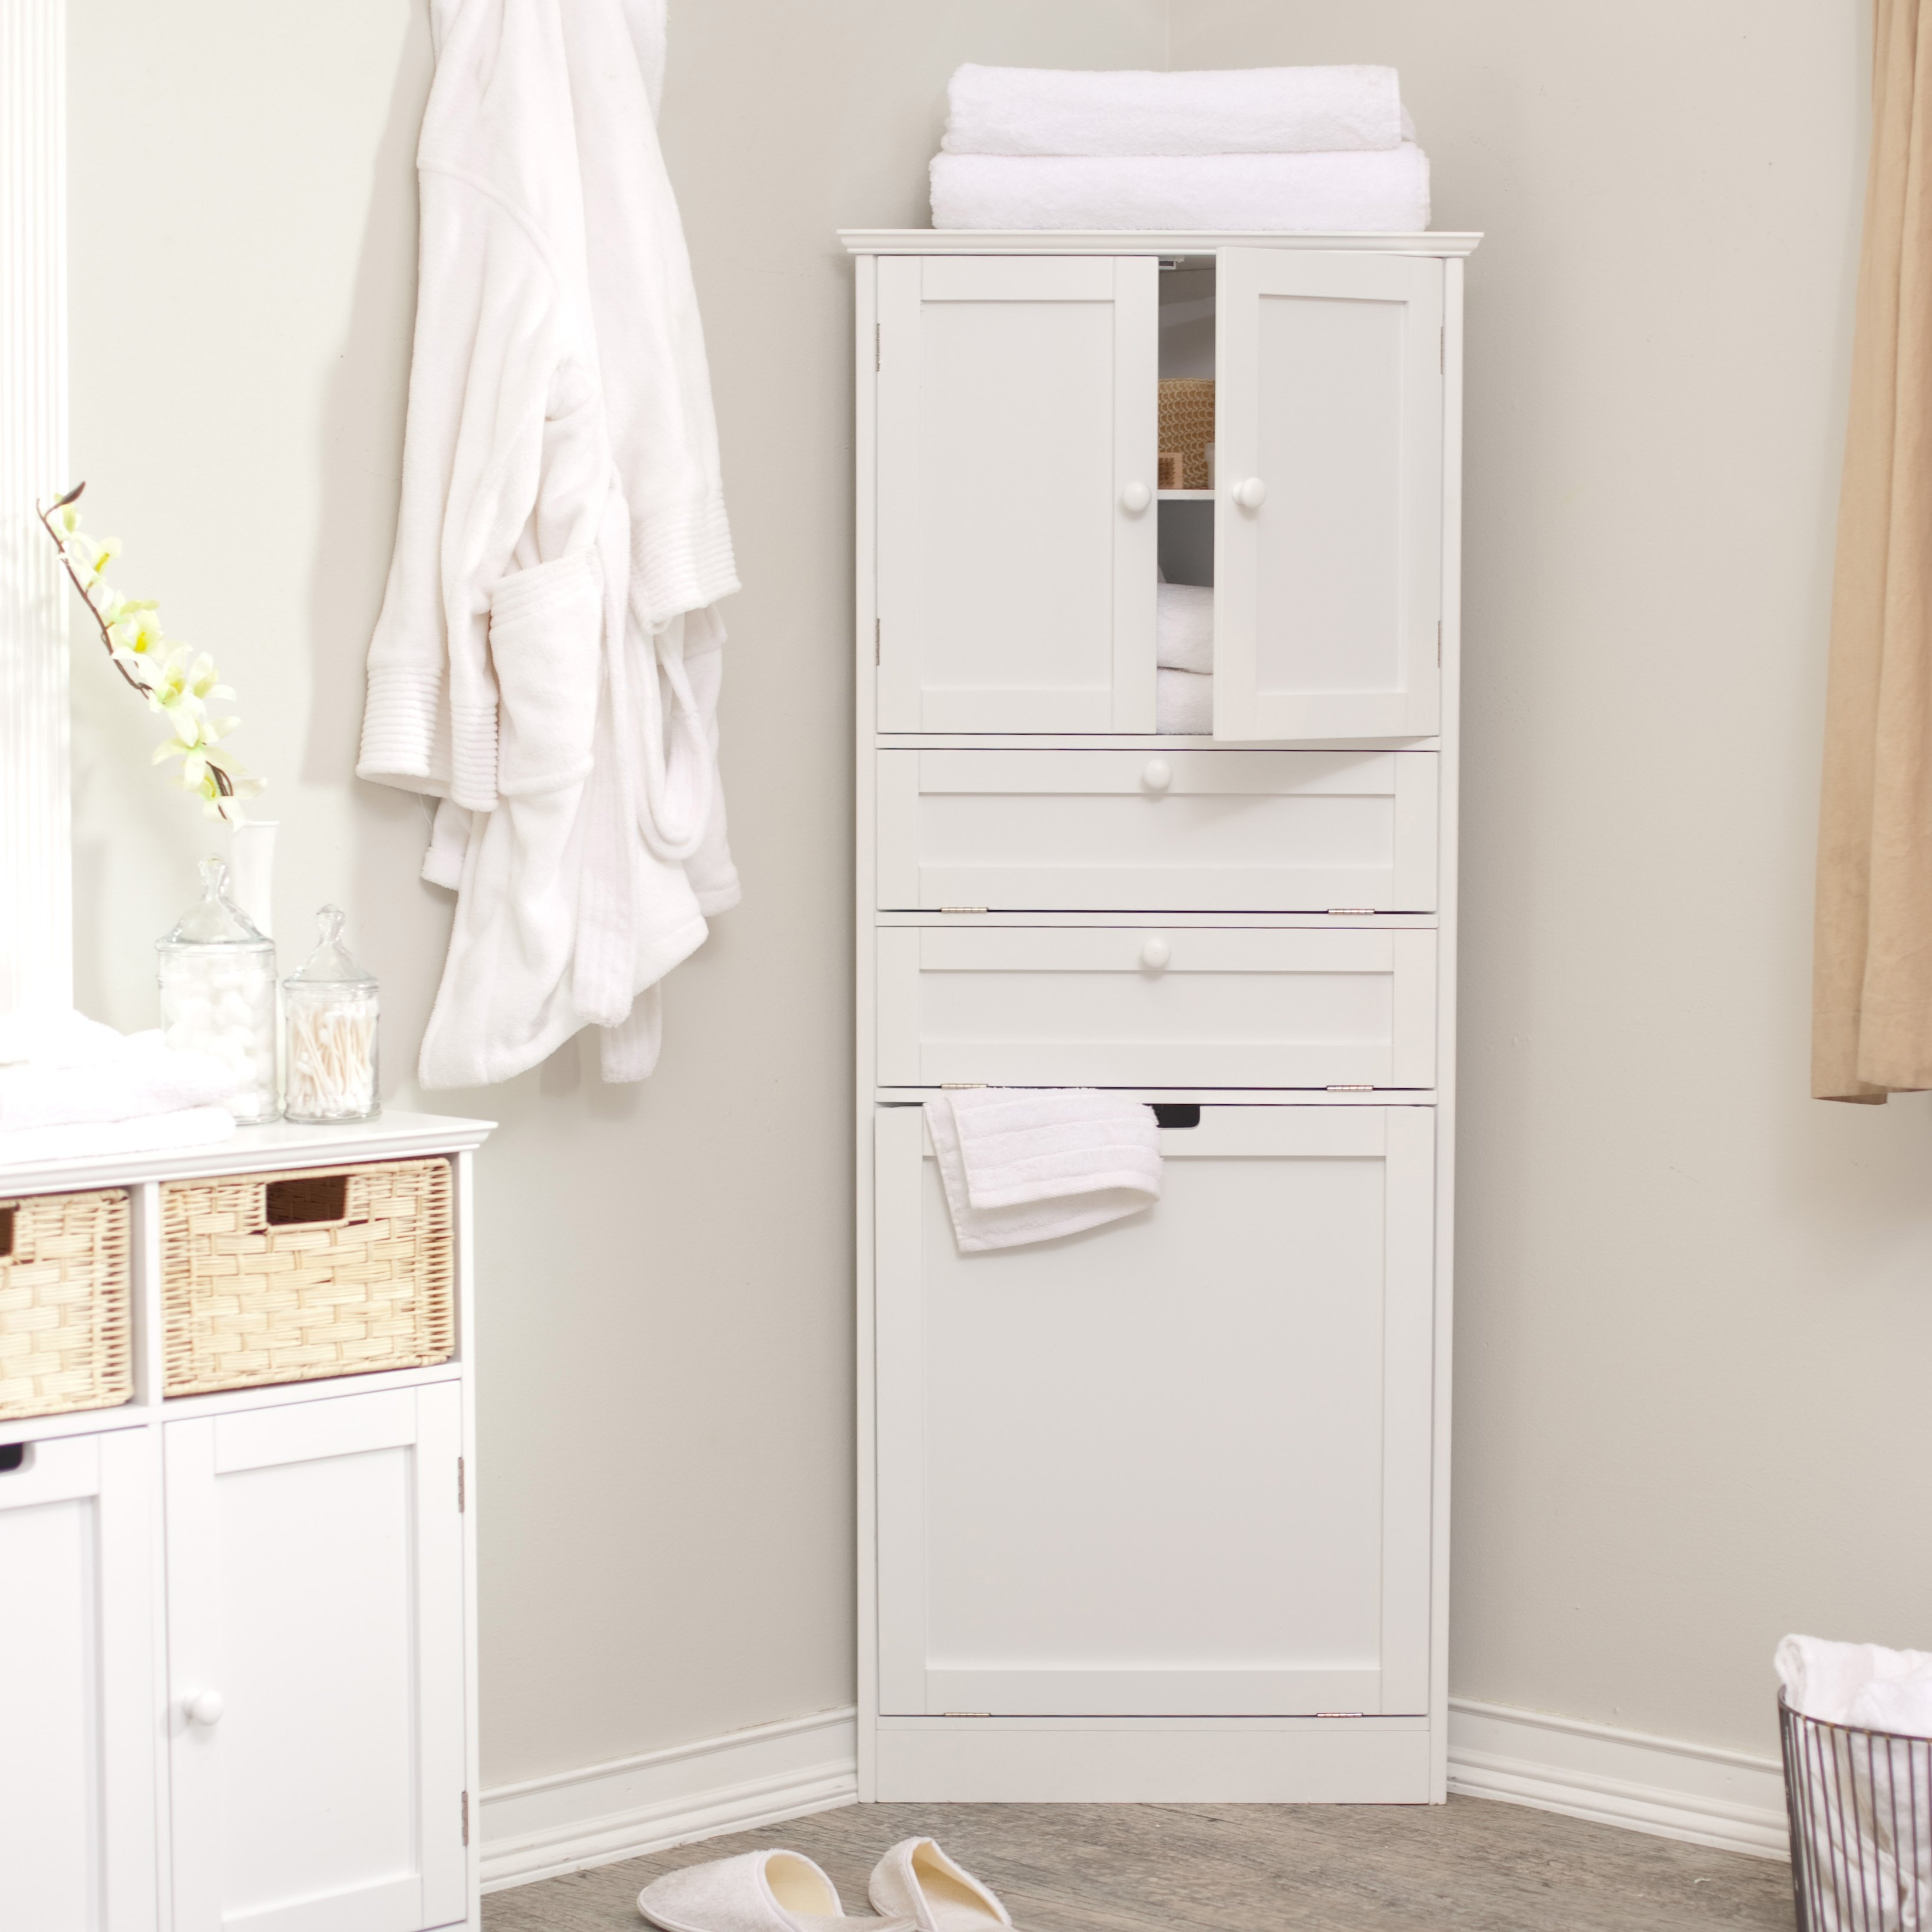 Permalink to Bathroom Wall Cabinet White Ikea